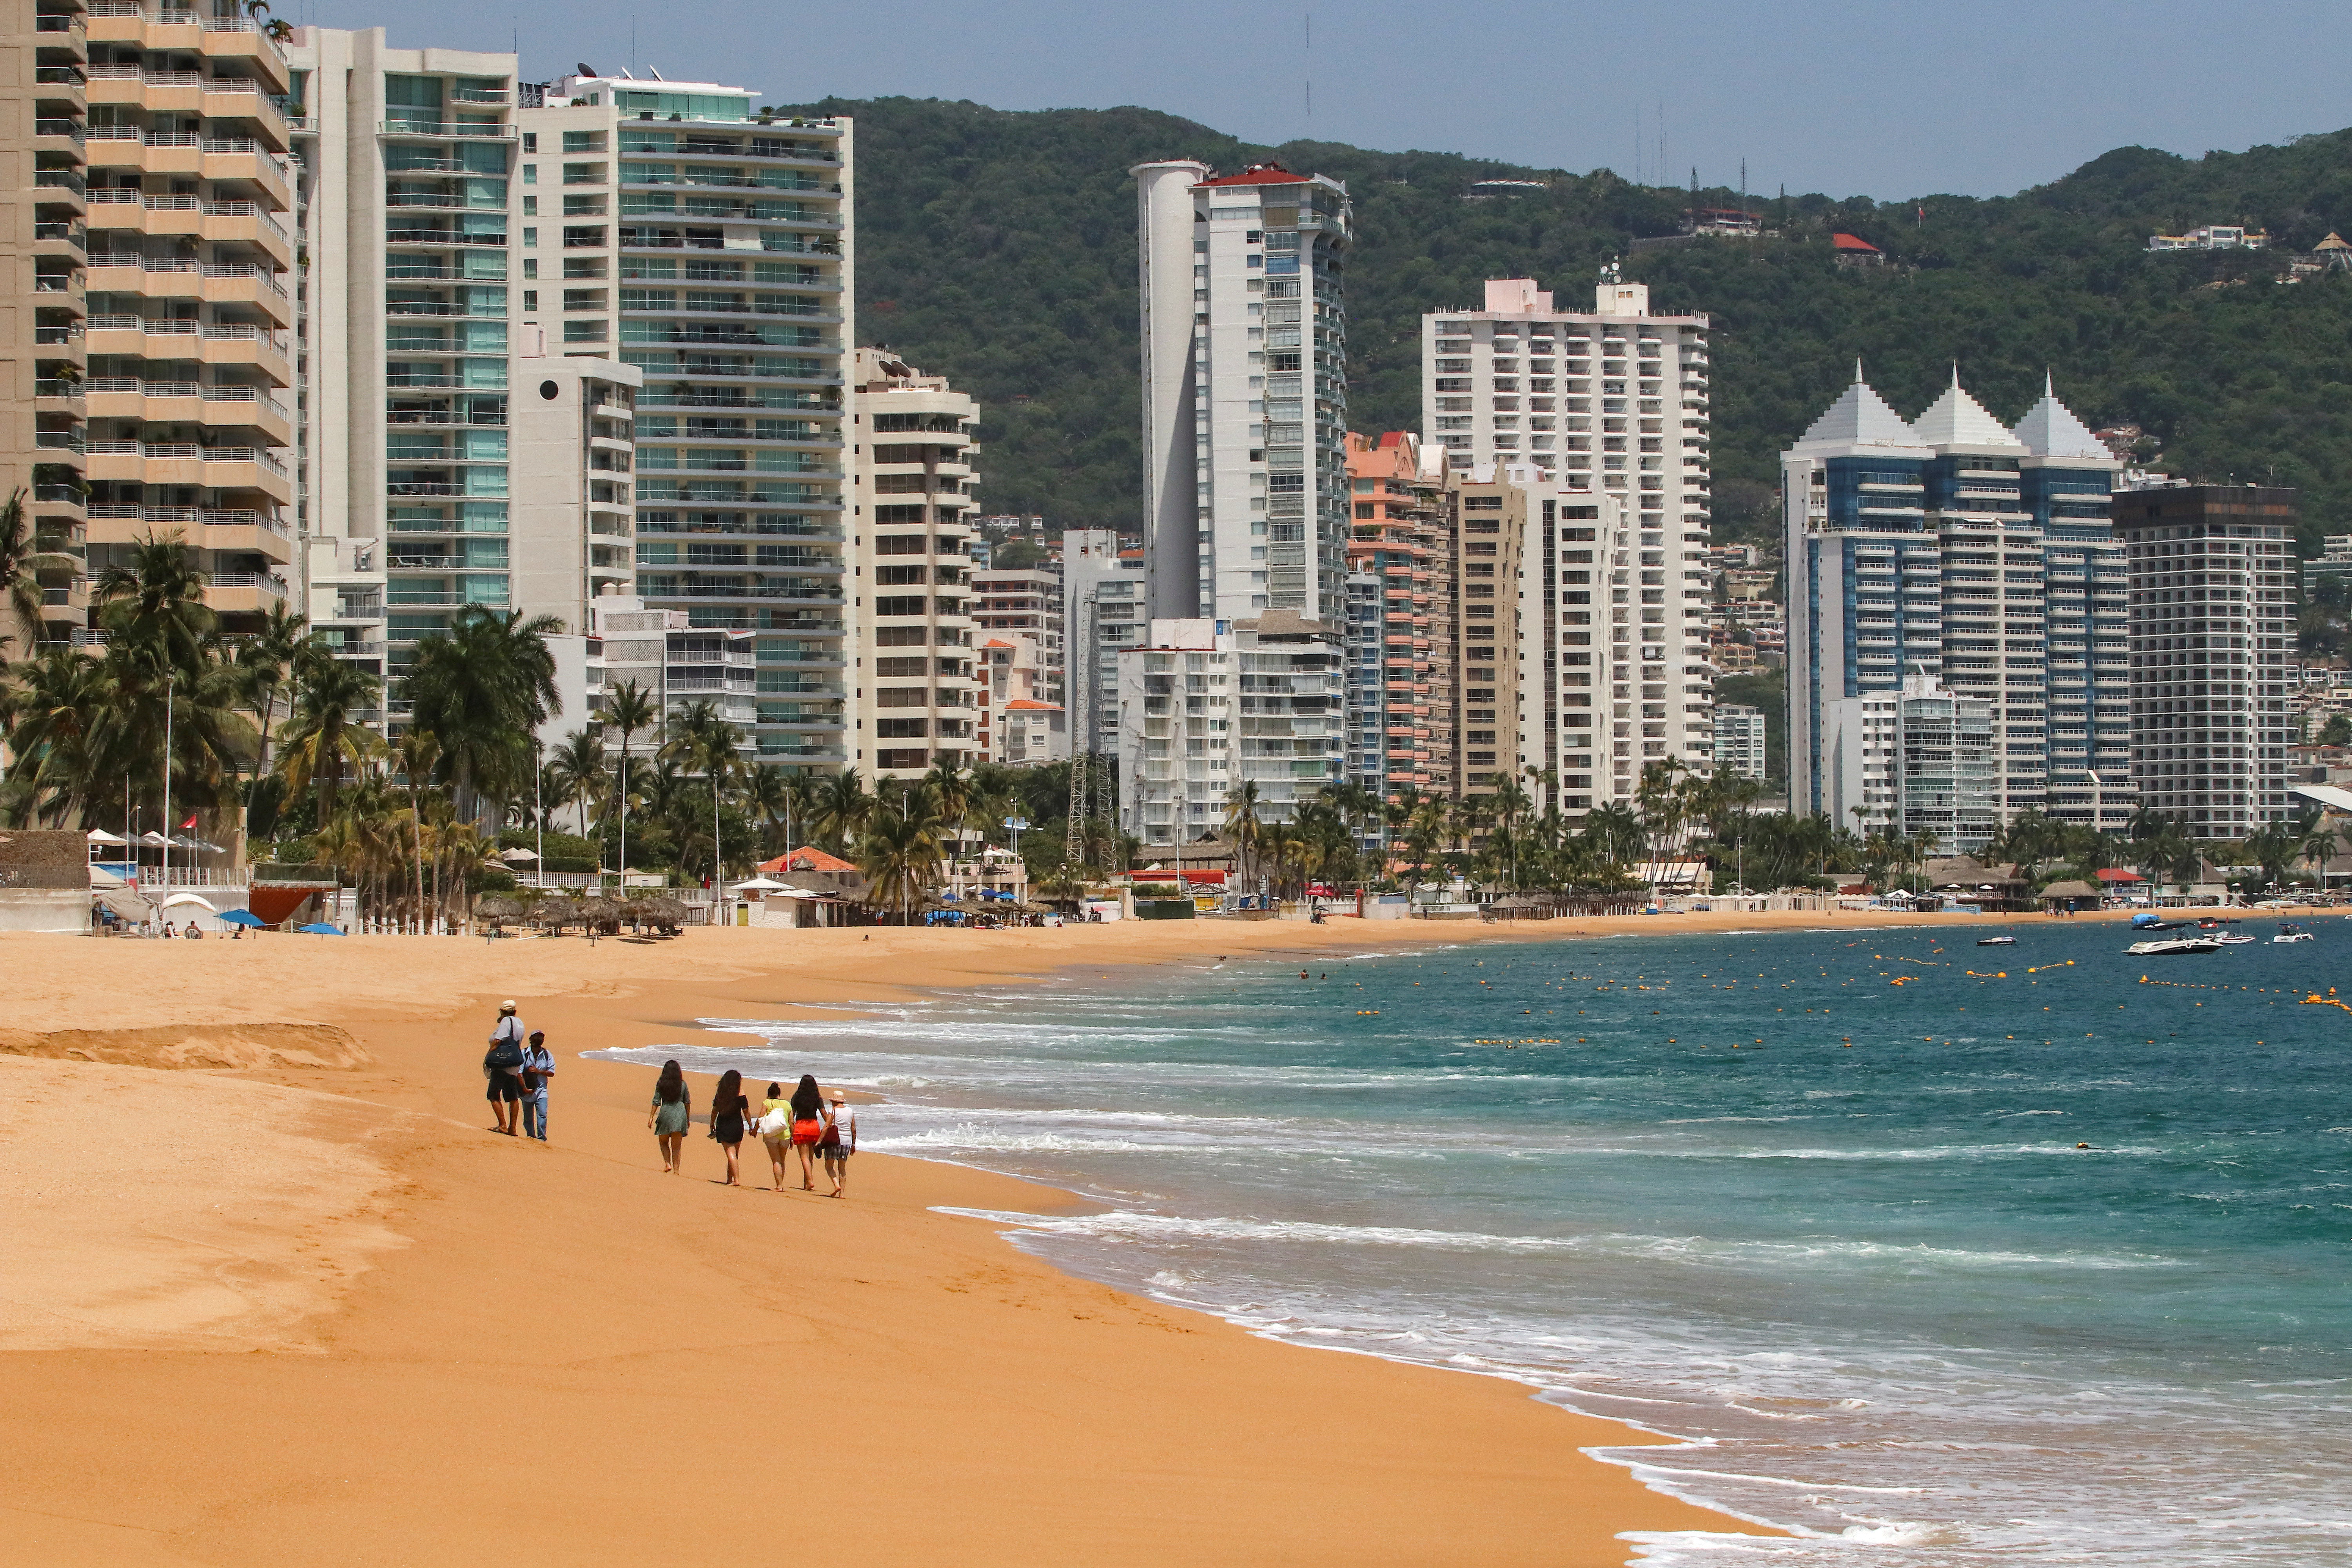 Tourists walk along a beach during the reopening of the beaches and hotels after confinement measures were eased this week, as the coronavirus disease (COVID-19) outbreak continues in Acapulco, Mexico July 2, 2020.